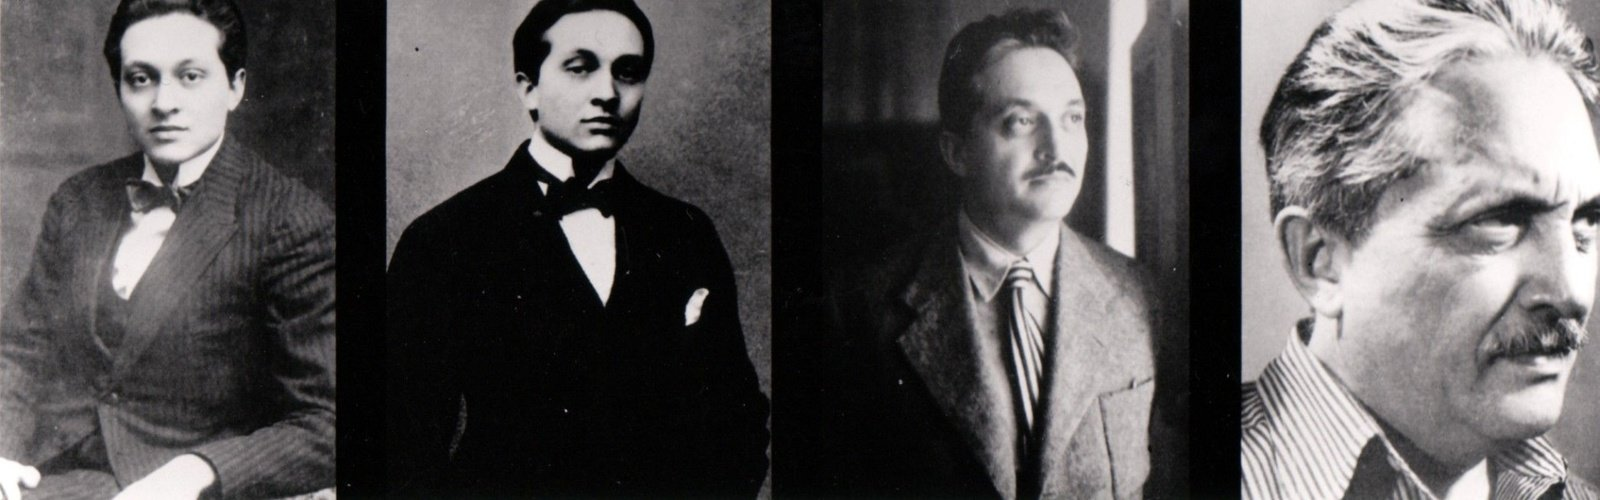 Four portraits of Marcel Janco, dated, from left to right: 1915, 1917, 1930, 1960s, Unknown photographers, Josine Ianco-Starrels Collection, Copyright Not Evaluated